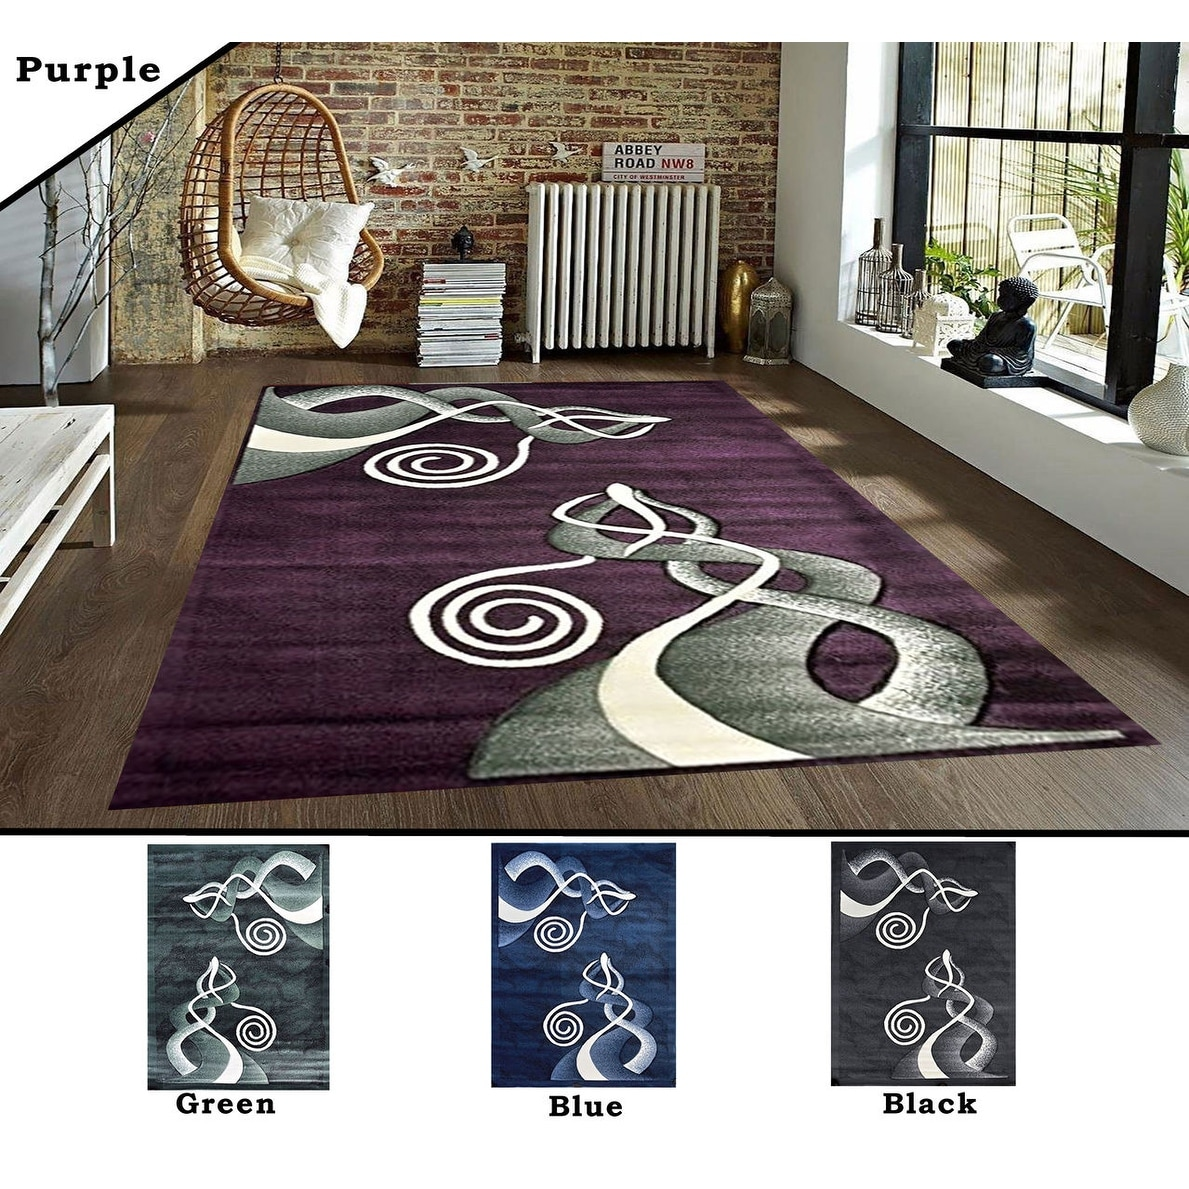 2x7 2 5 3x7 2 8x10 Feet Rug Carpet Area Rug Green Black Purple Blue Polyester Modern Contemporary Overstock 11981198